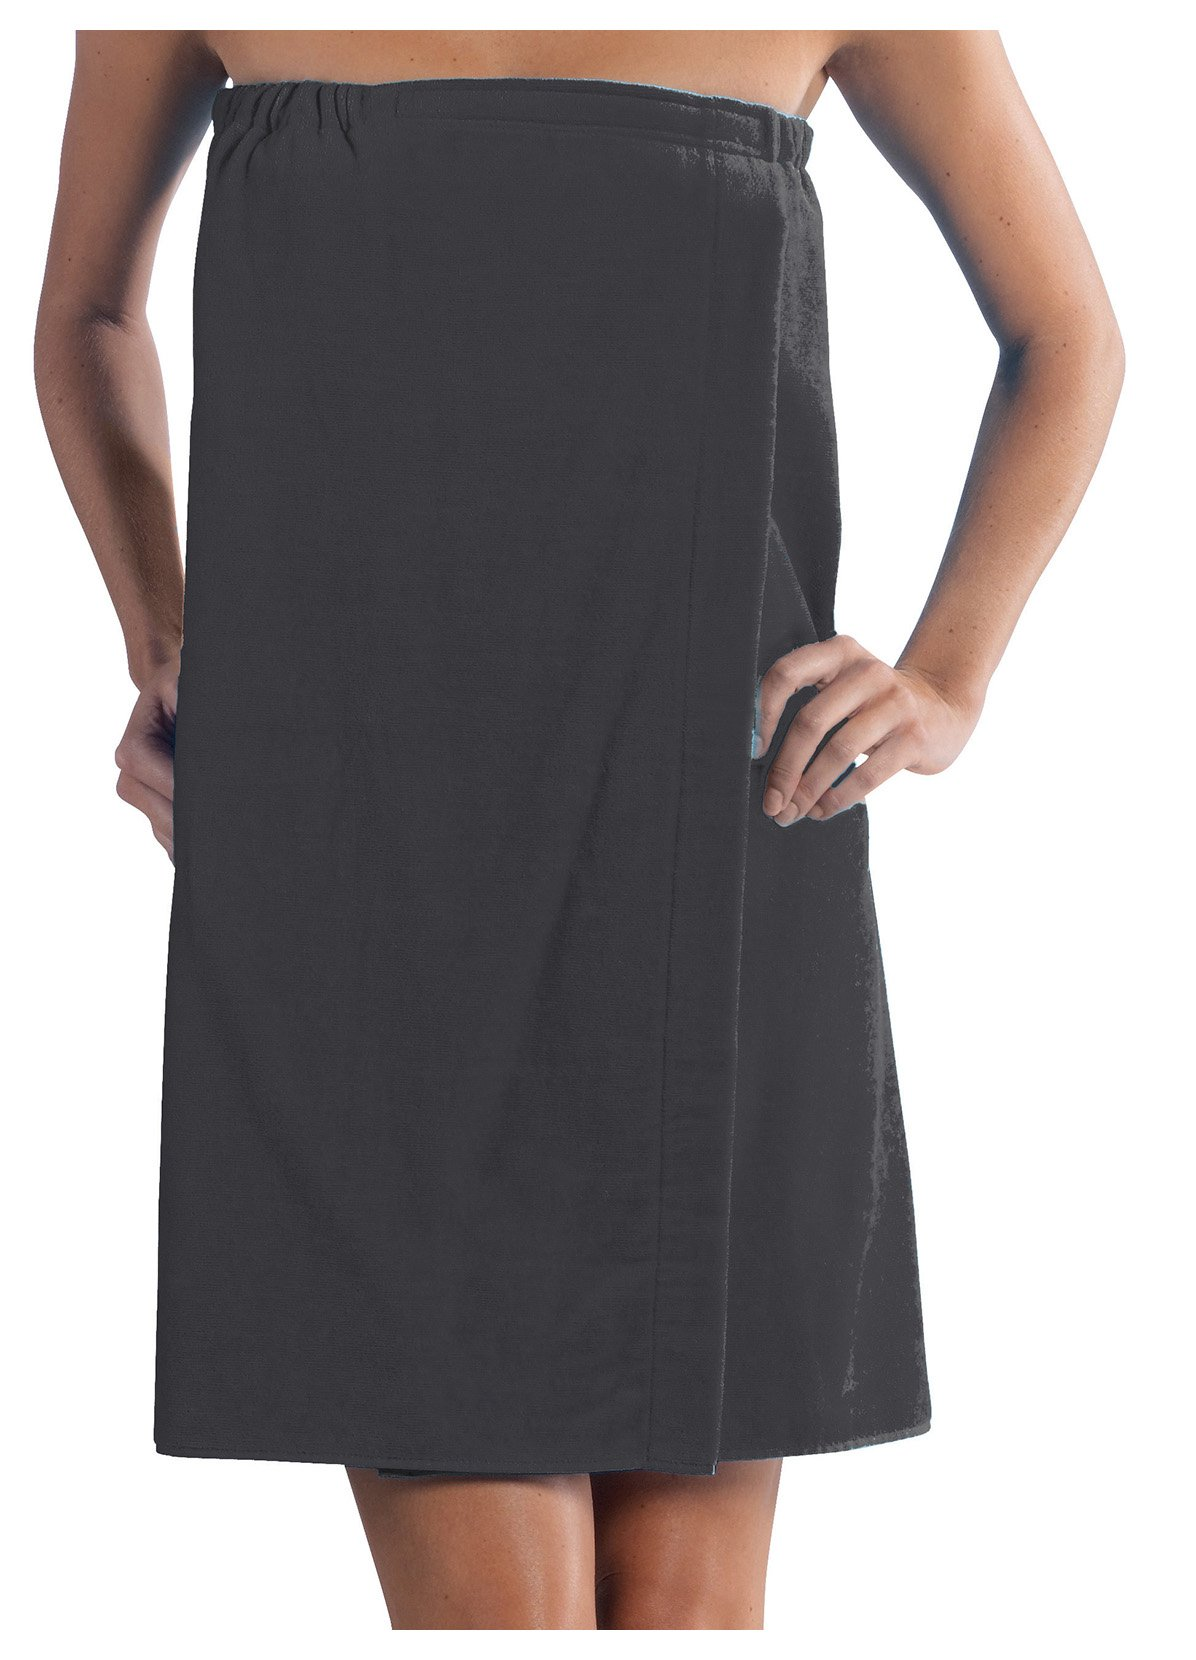 robesale Spa Wrap Terry Cotton Ladies Cover Ups, Charcoal, One Size